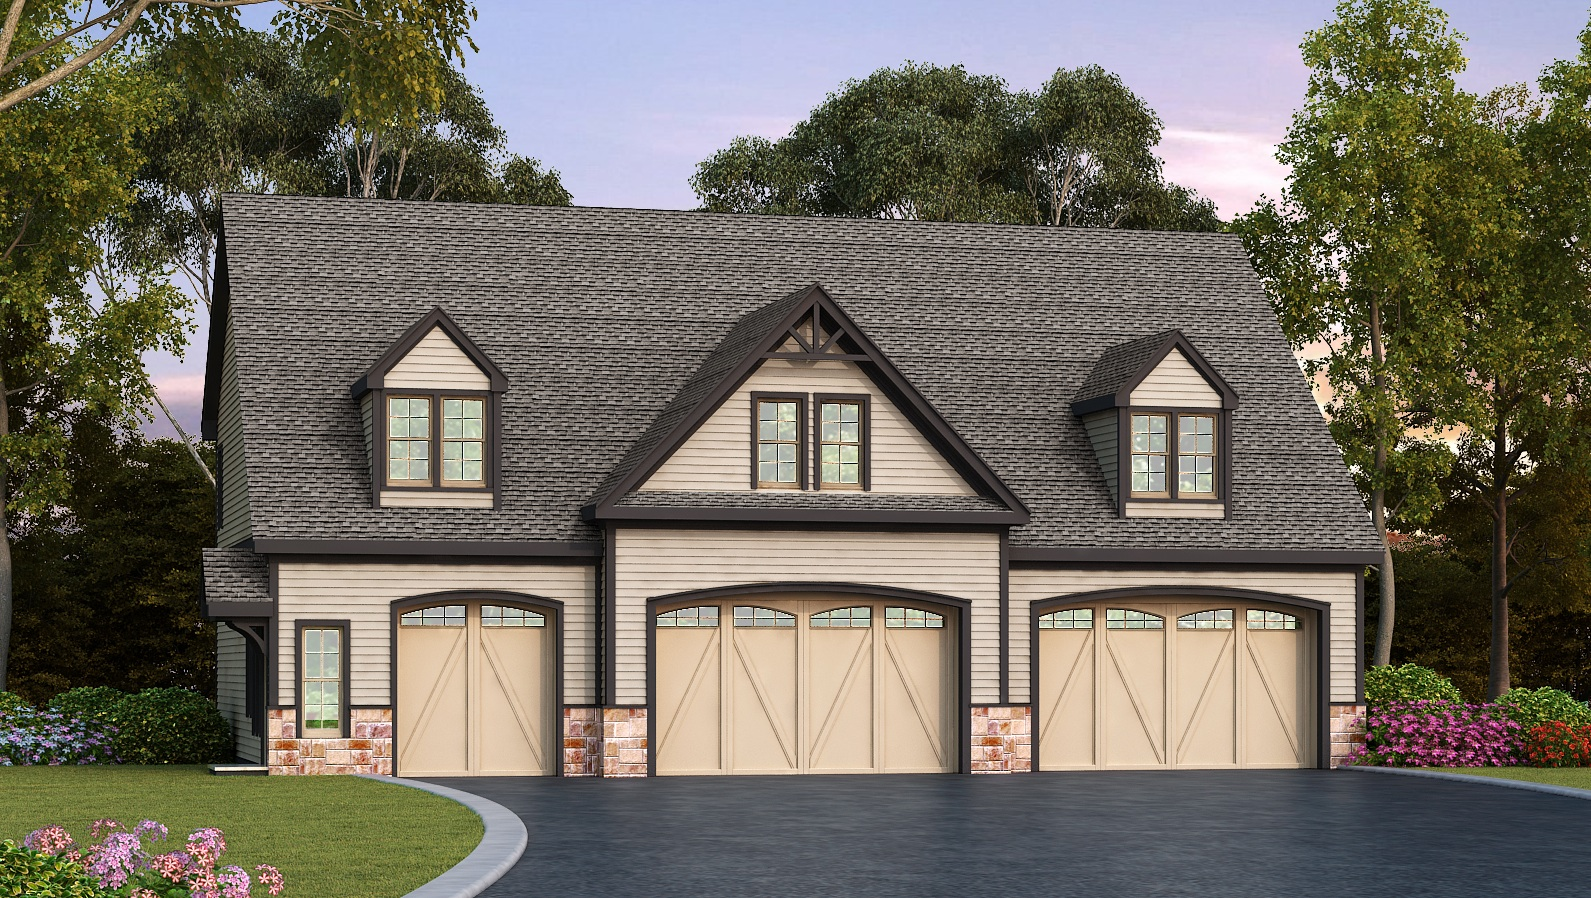 residential 5 car detached garage plan 29870rl architectural house plans with detached garage on wiring house to detached garage [ 1591 x 898 Pixel ]